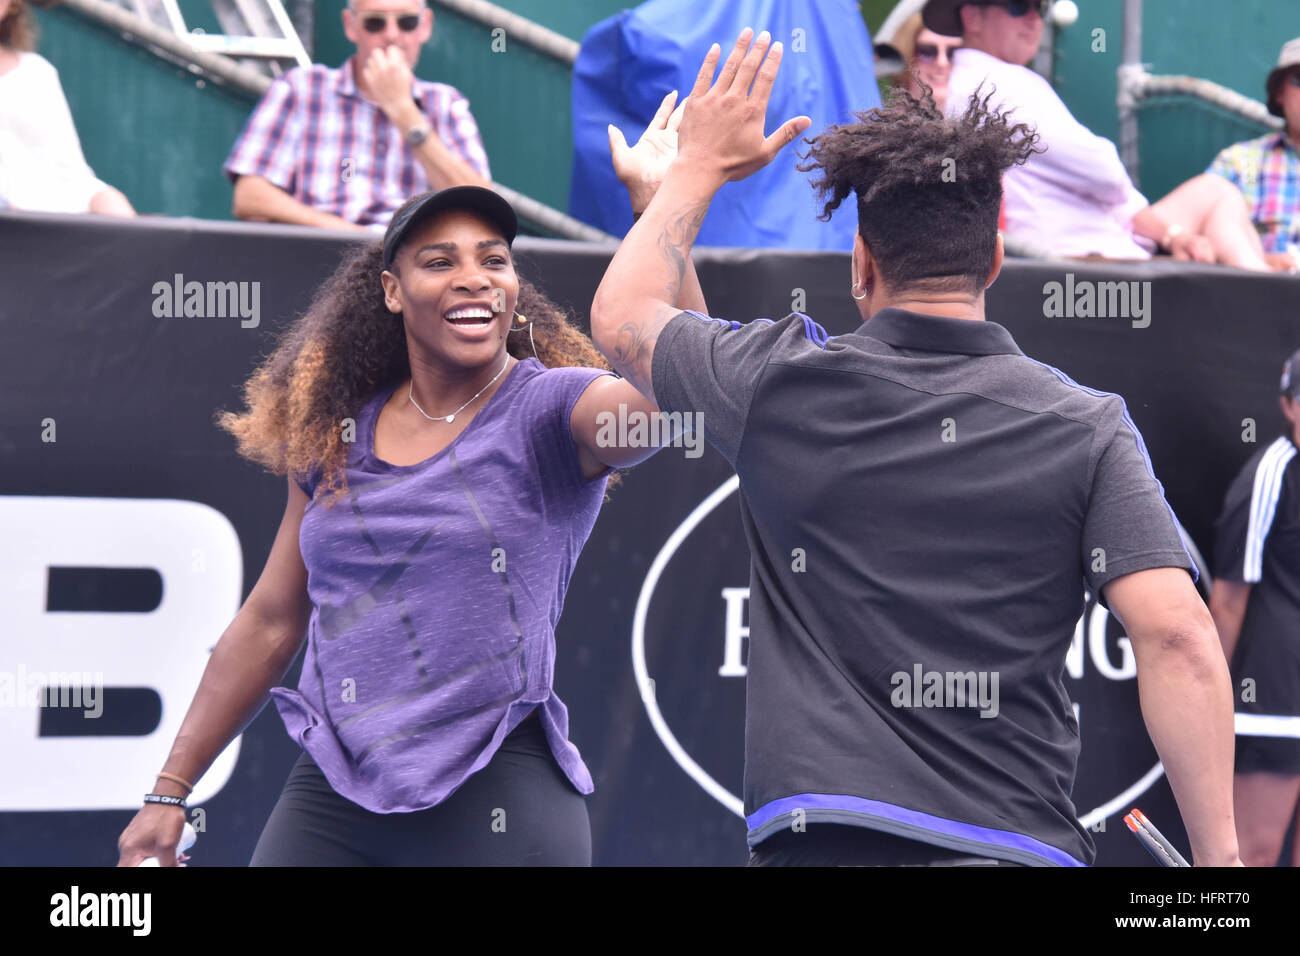 Aucklanda, New Zealand. 01st Jan, 2017. Tennis superstar Serena Williams and All Blacks rugby star Ardie Savea during - Stock Image